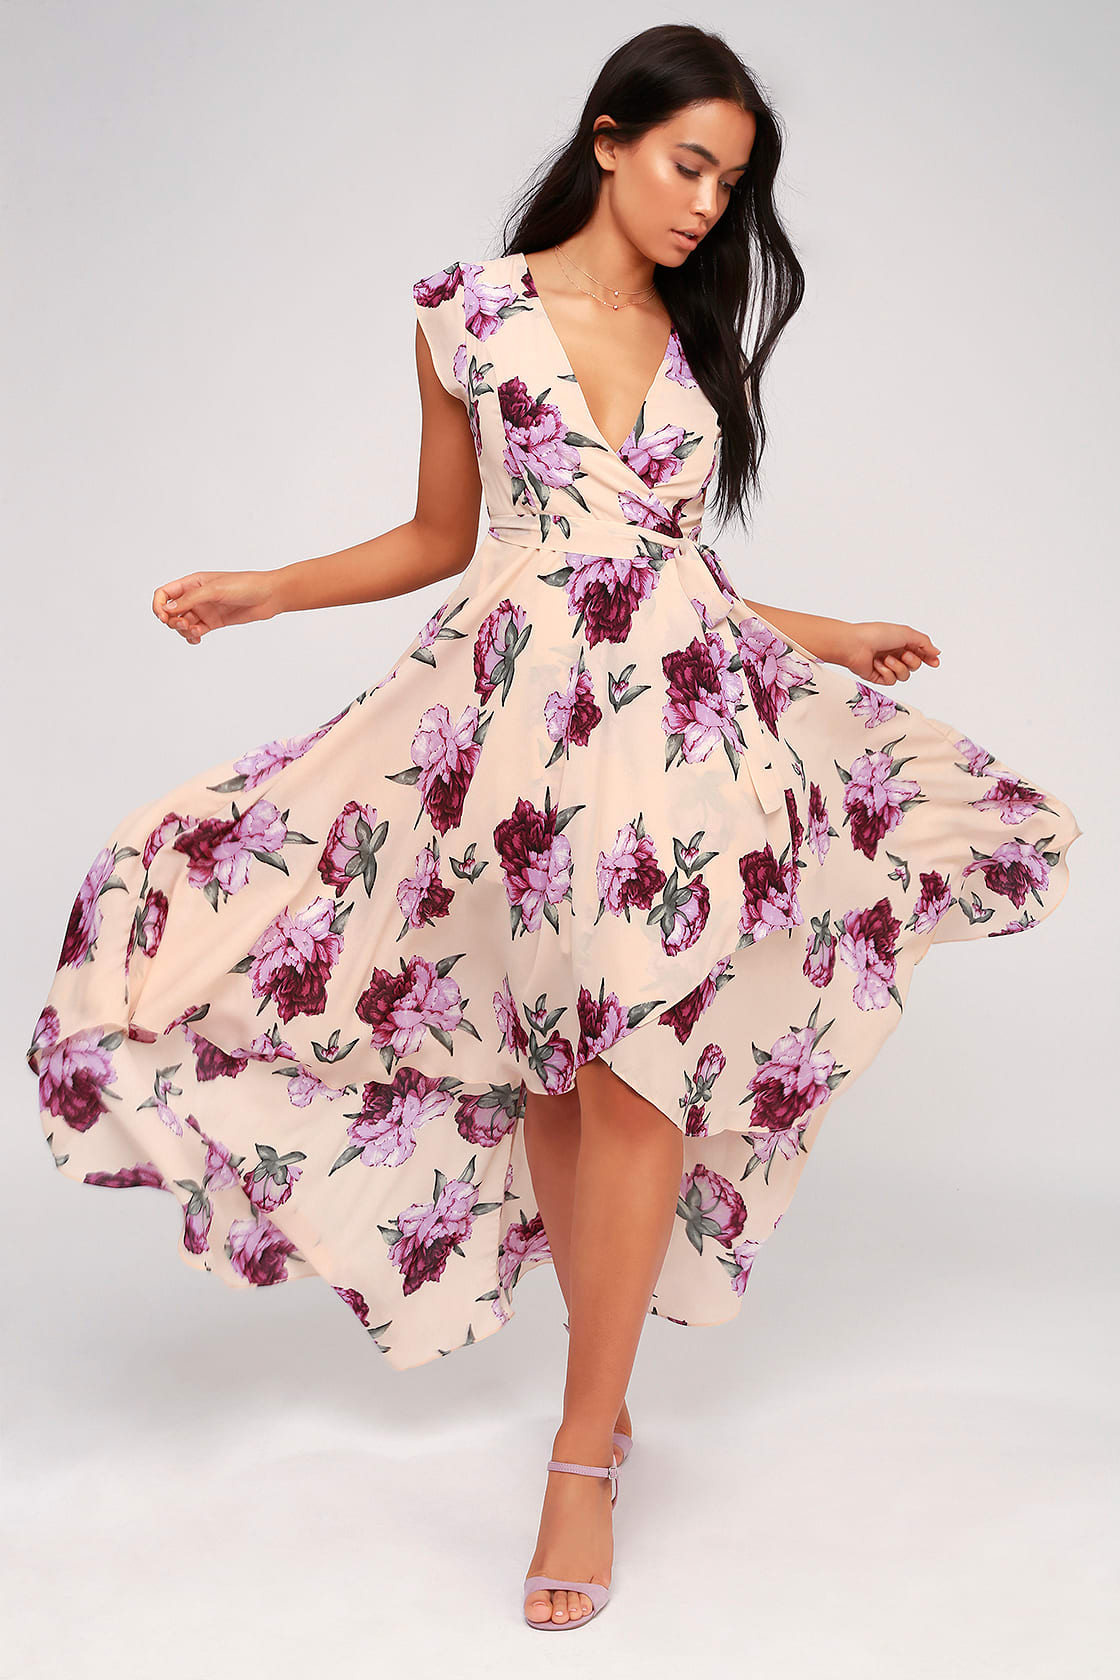 French Countryside Blush Floral Print High-Low Dress